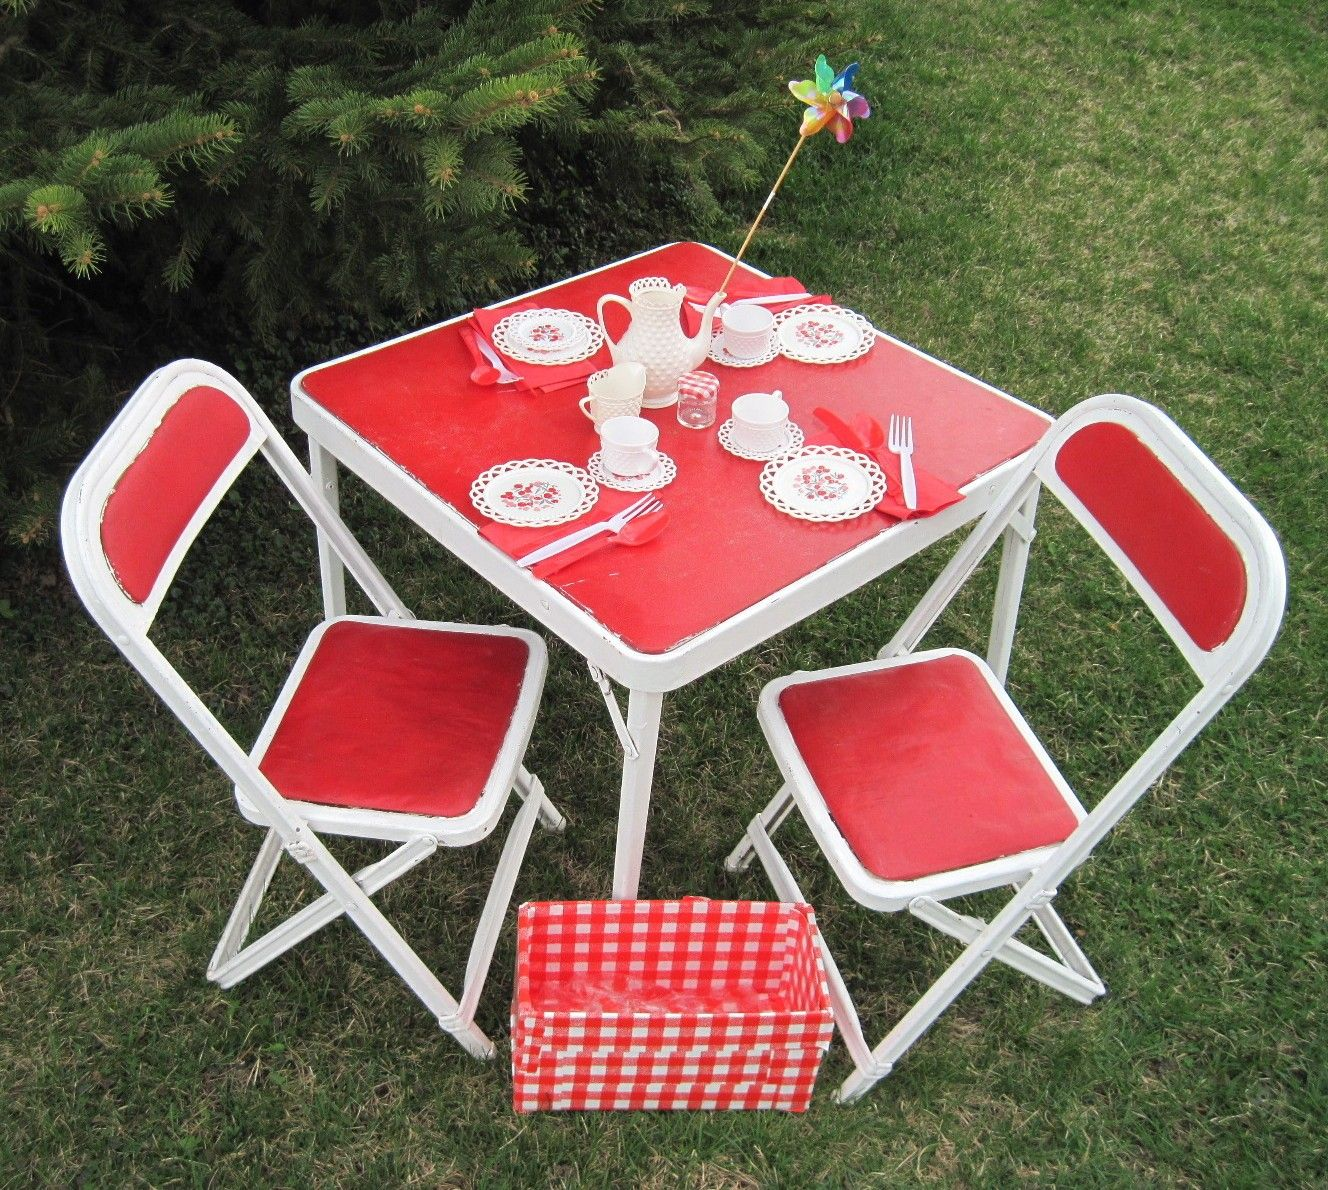 hosted many tea parties with my plastic dishes on my red and white table set